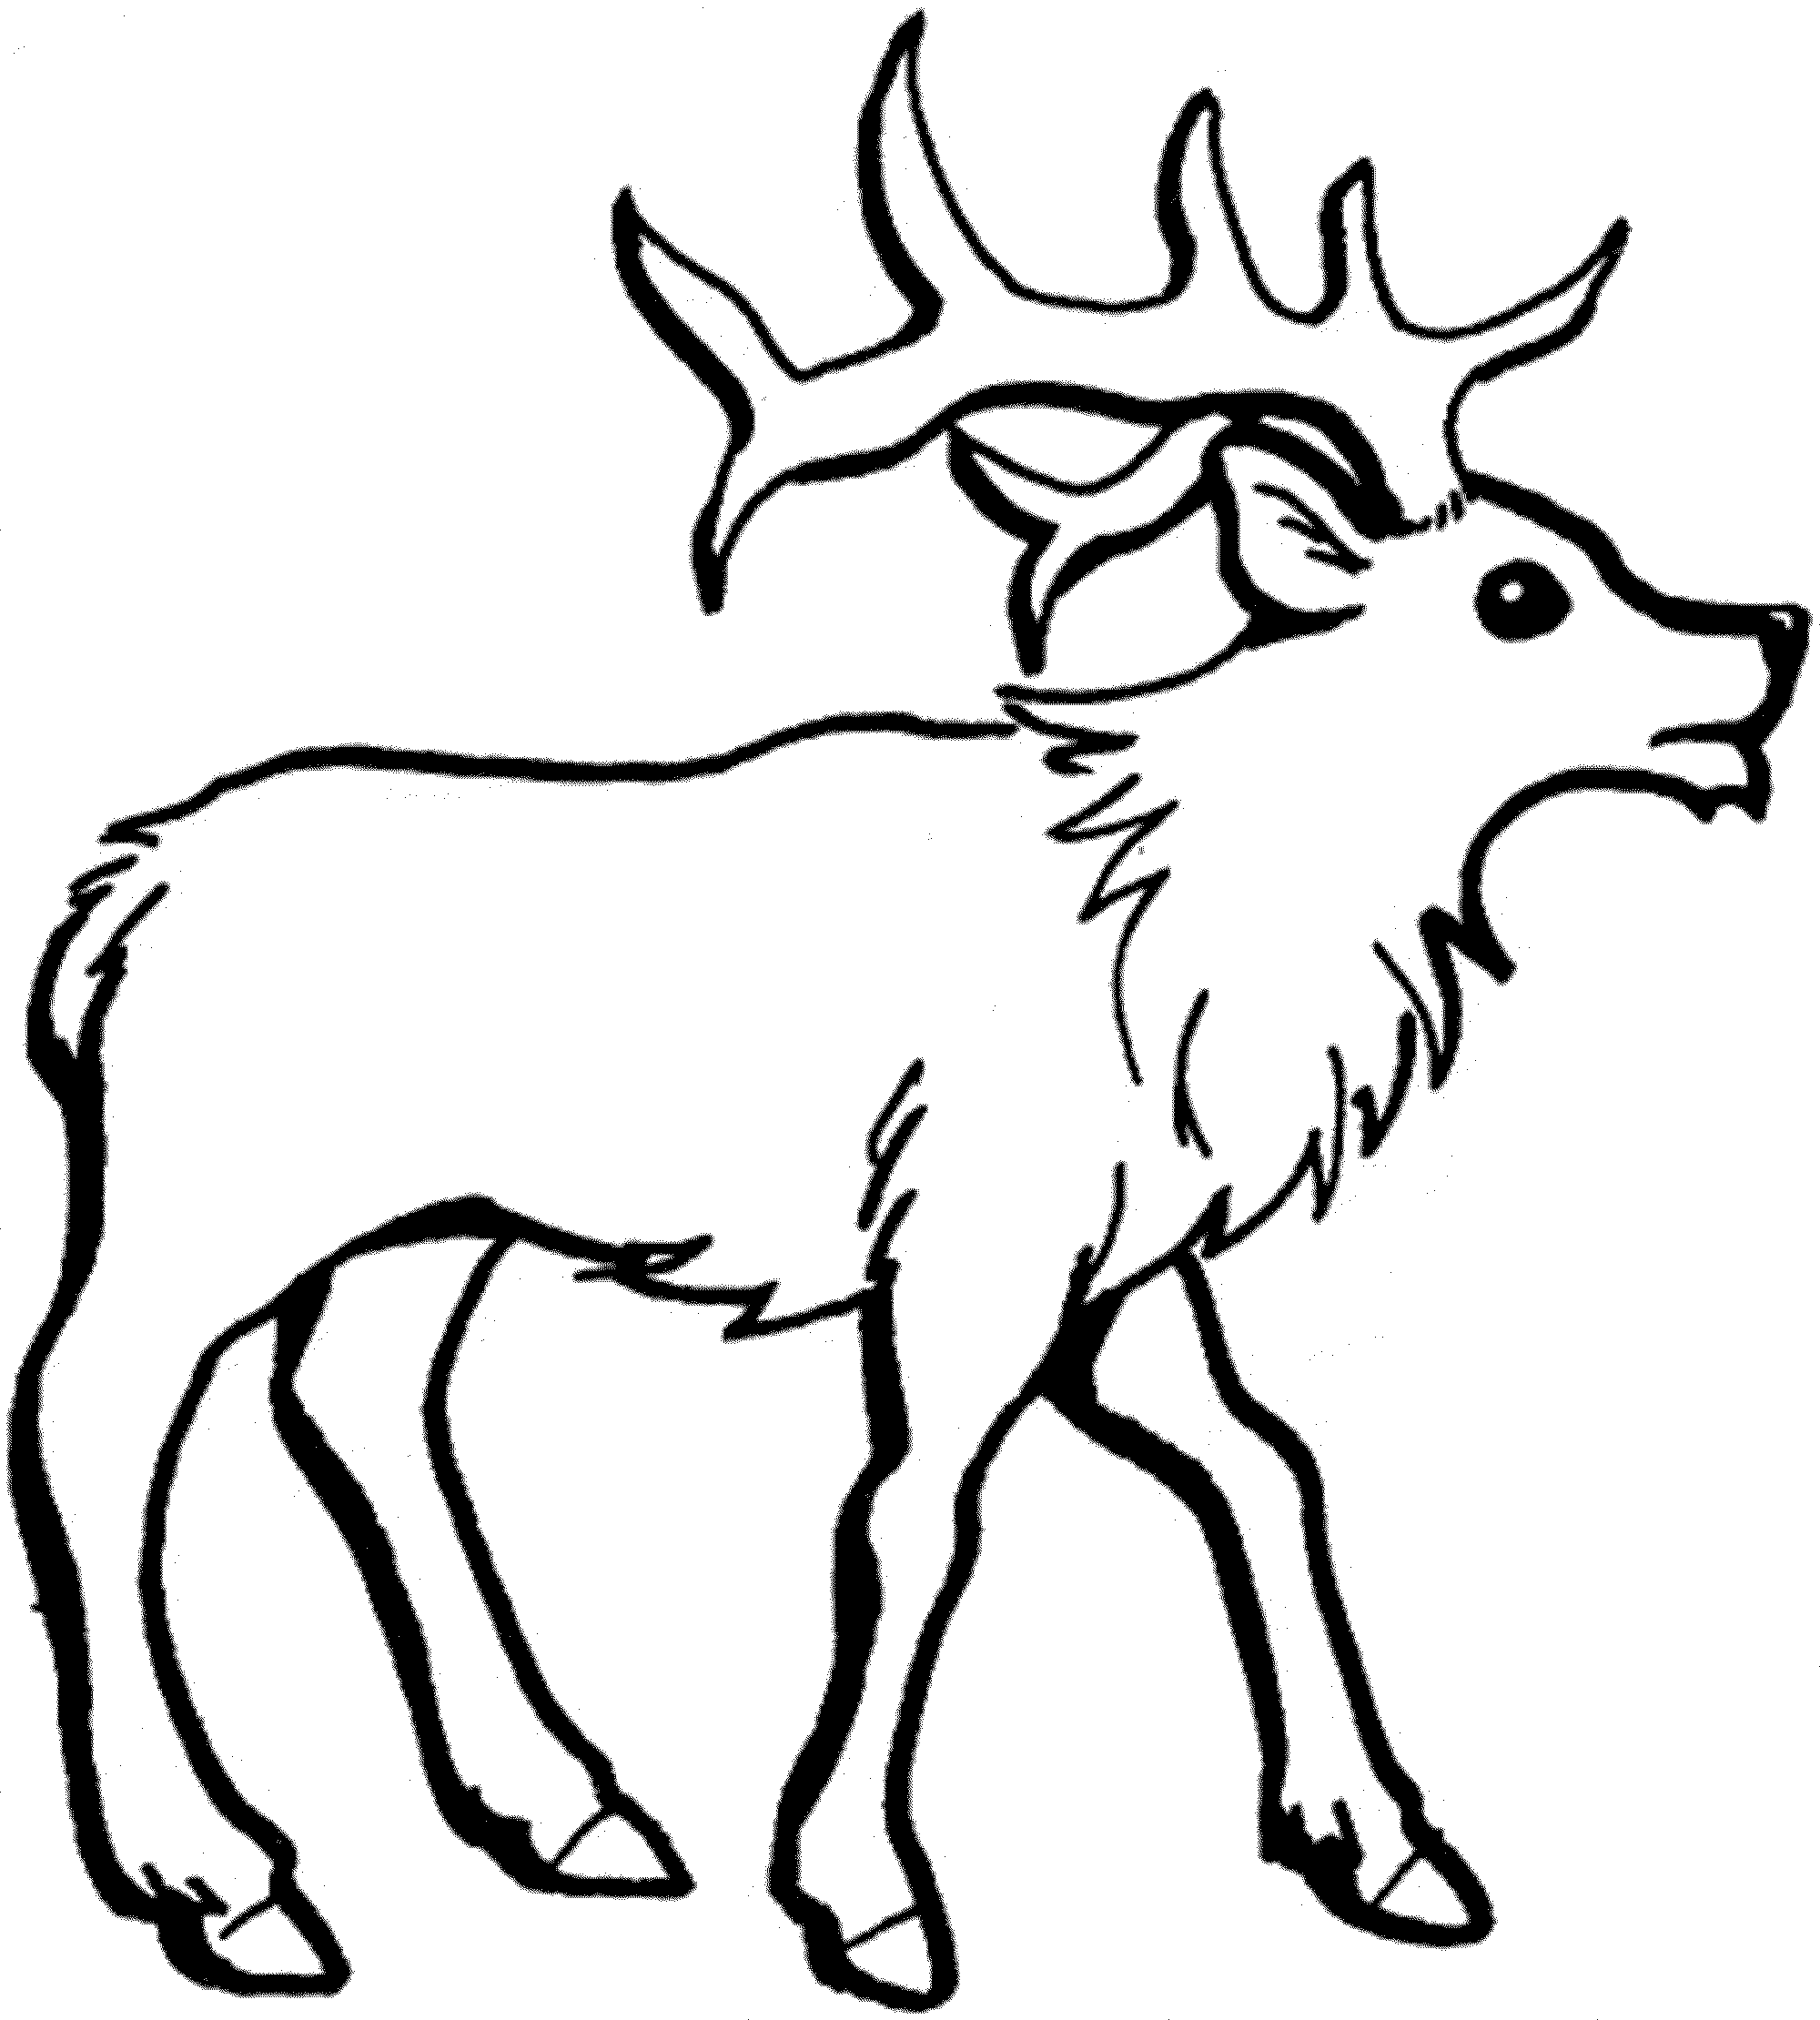 2000x2220 Extraordinary Baby Reindeer Coloring Pages Printable With Reindeer